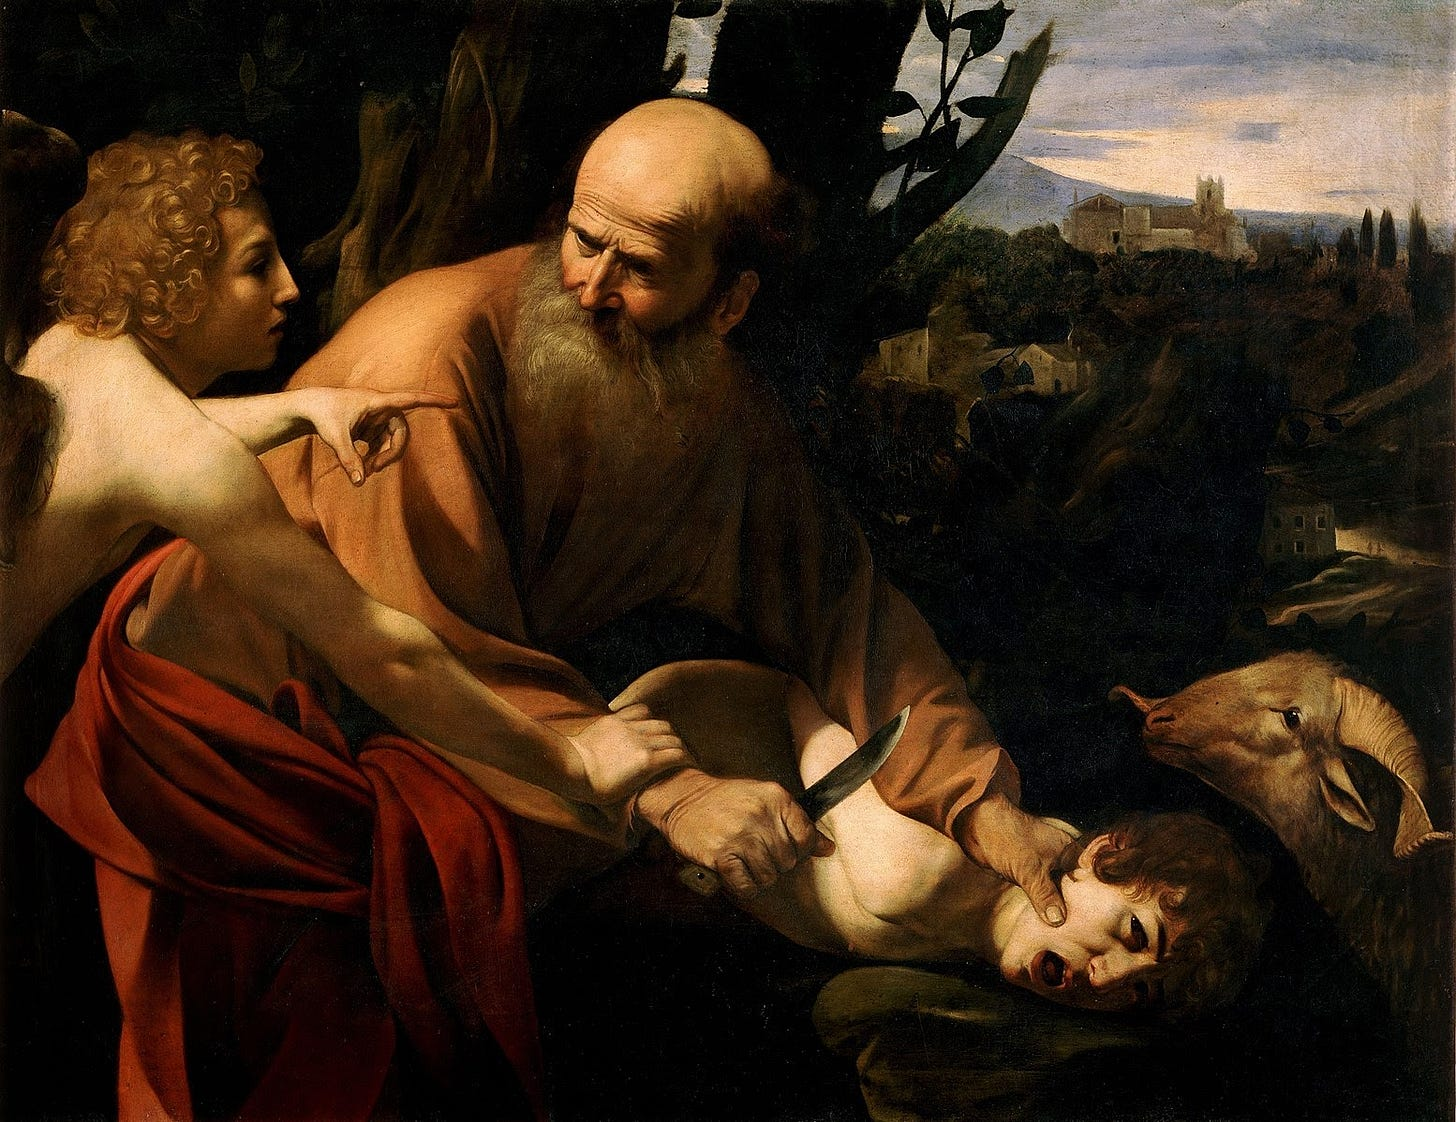 Renaissance painting of the sacrifice of Isaac. Abraham holds Isaac down, has a knife, the angel points at the ram. Lots of lights and darks. It's beautiful.